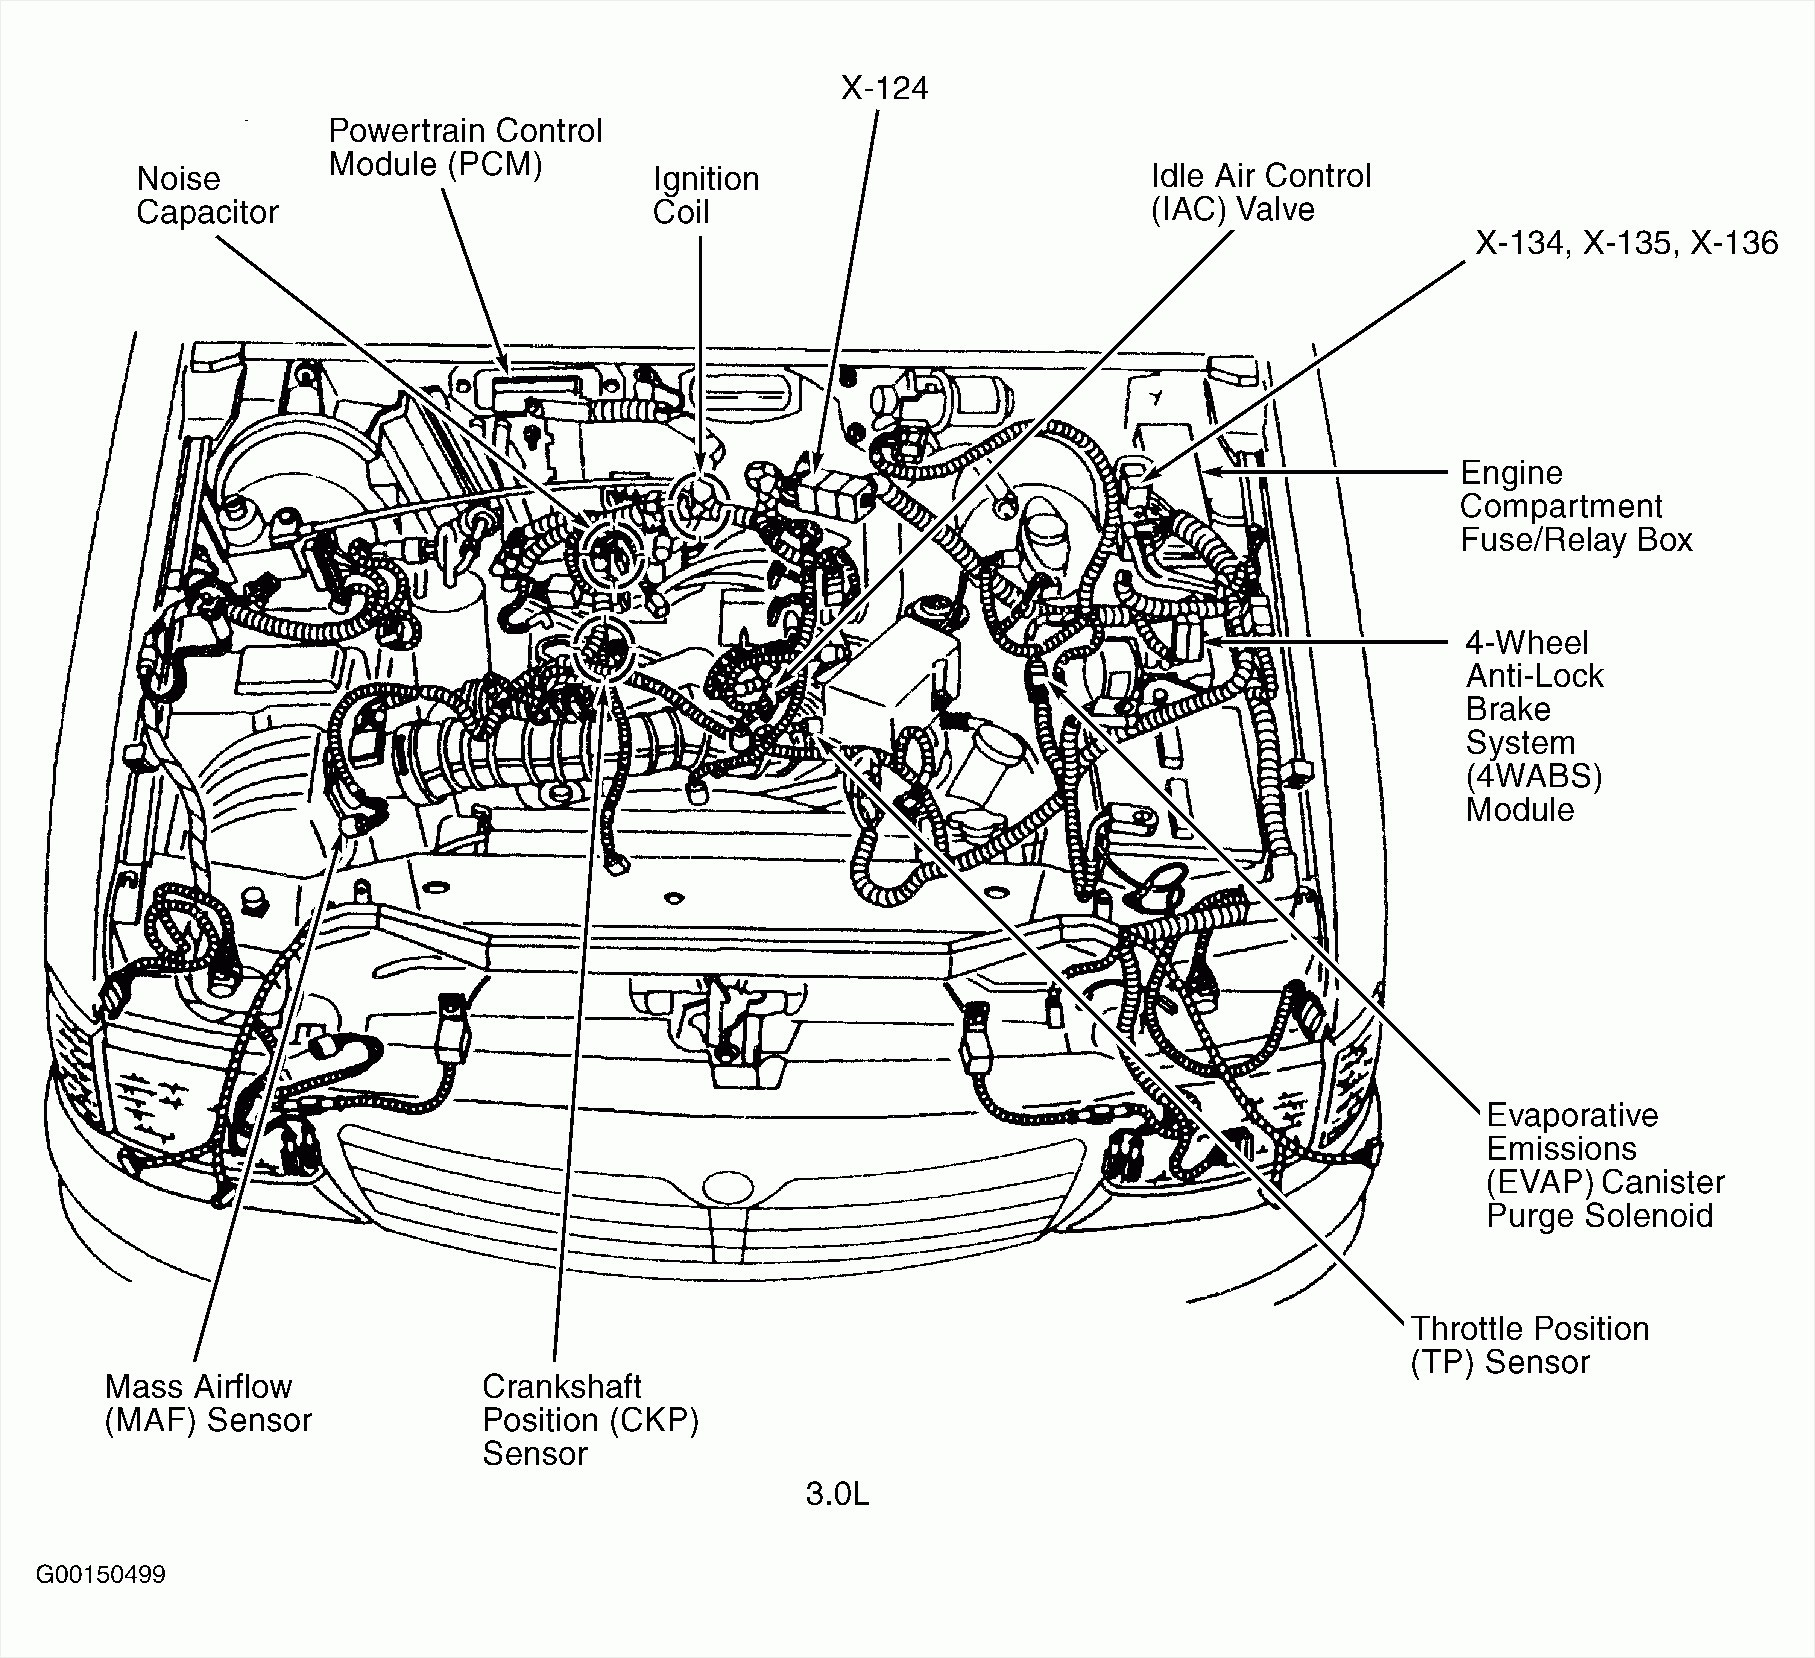 gm 3 4 liter engine diagram wiring diagram third level rh 1 11 13  jacobwinterstein com GM 3100 Engine Coolant Diagram 3.1L V6 Engine Diagram